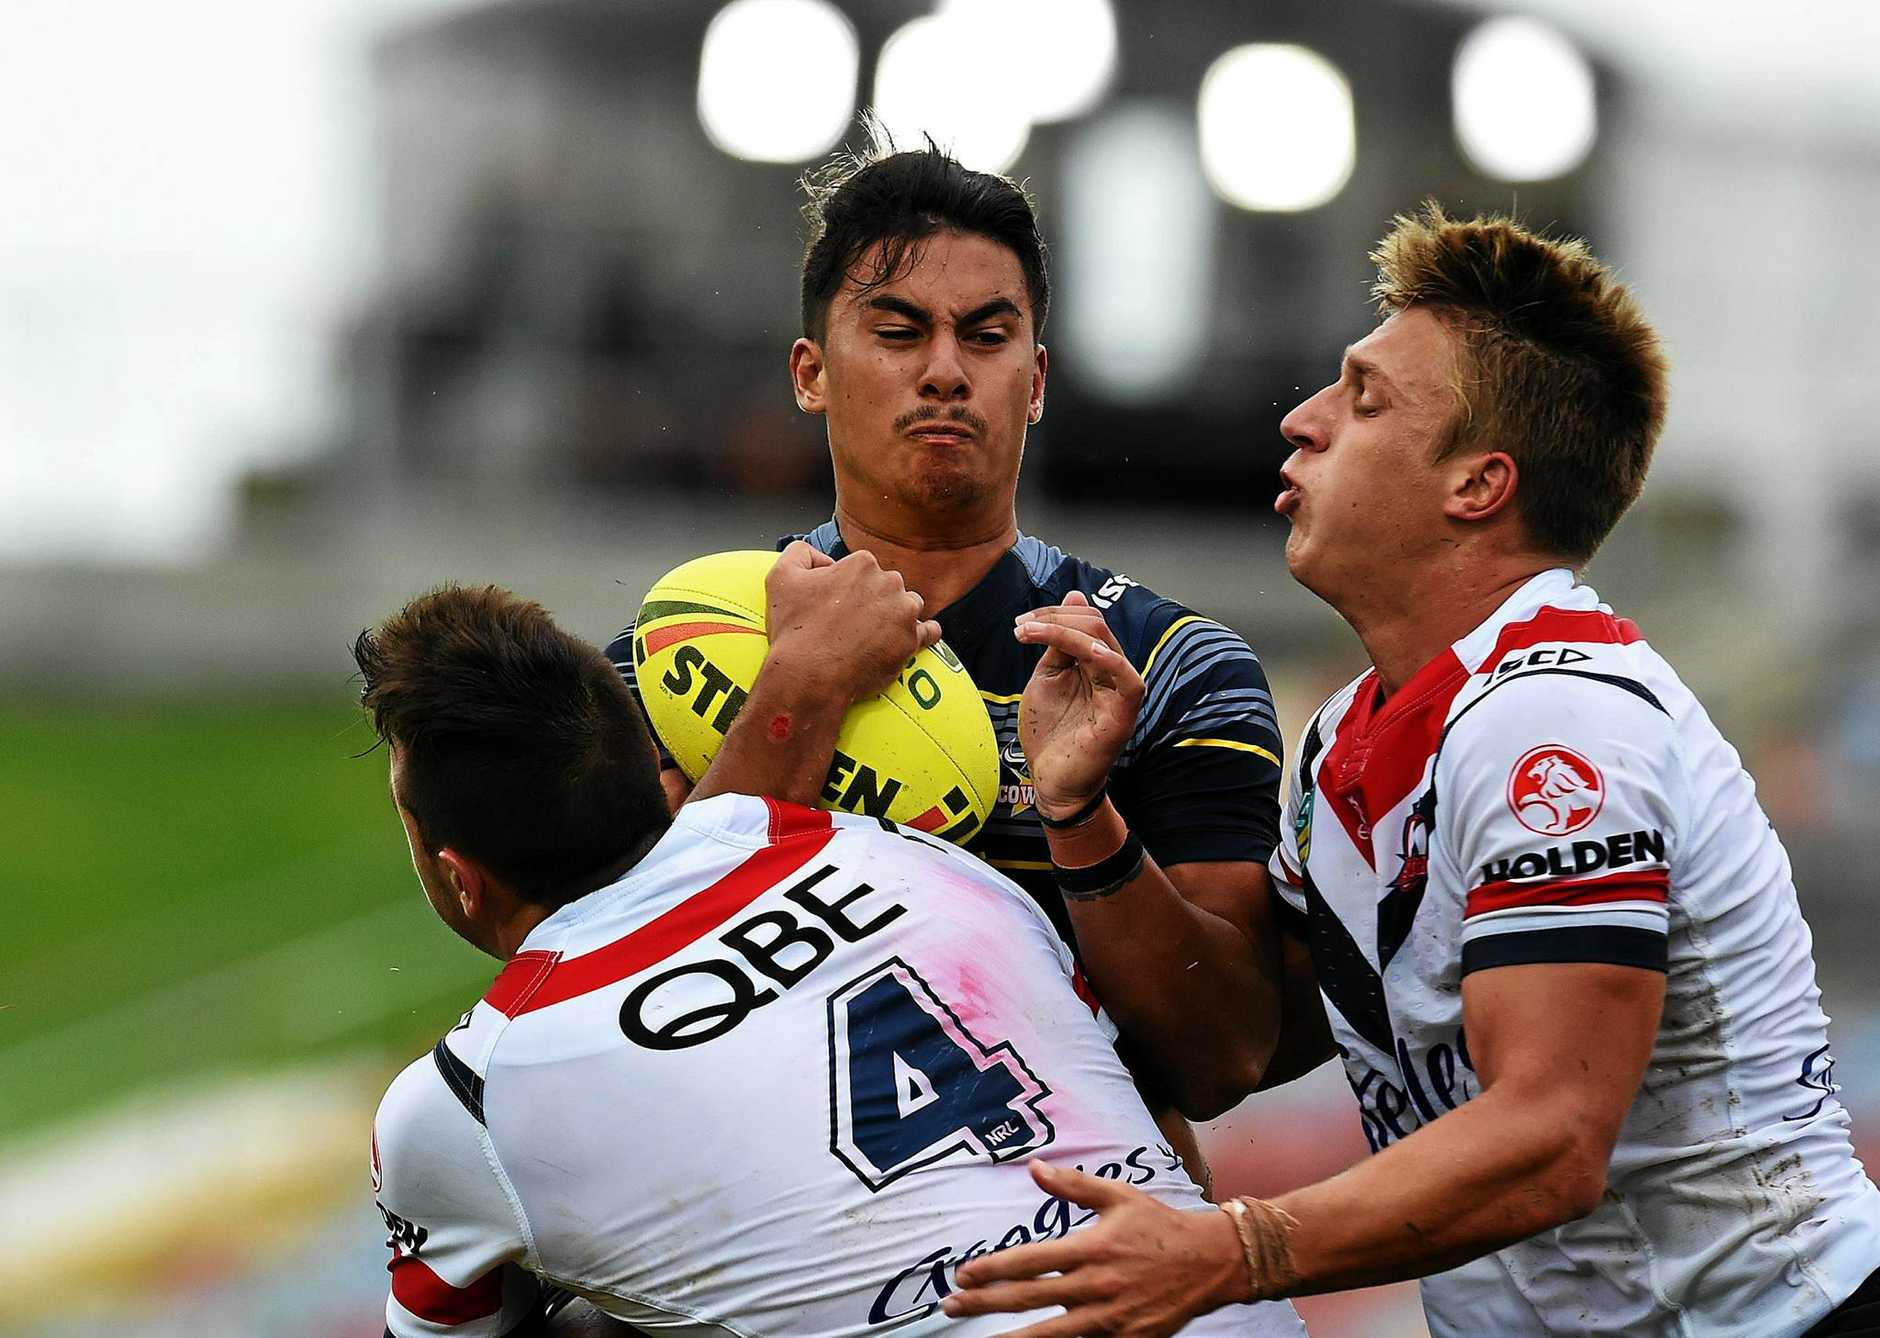 North Queensland Cowboys under-20s player Enari Tuala in action against the Sydney Roosters at 1300SMILES Stadium.